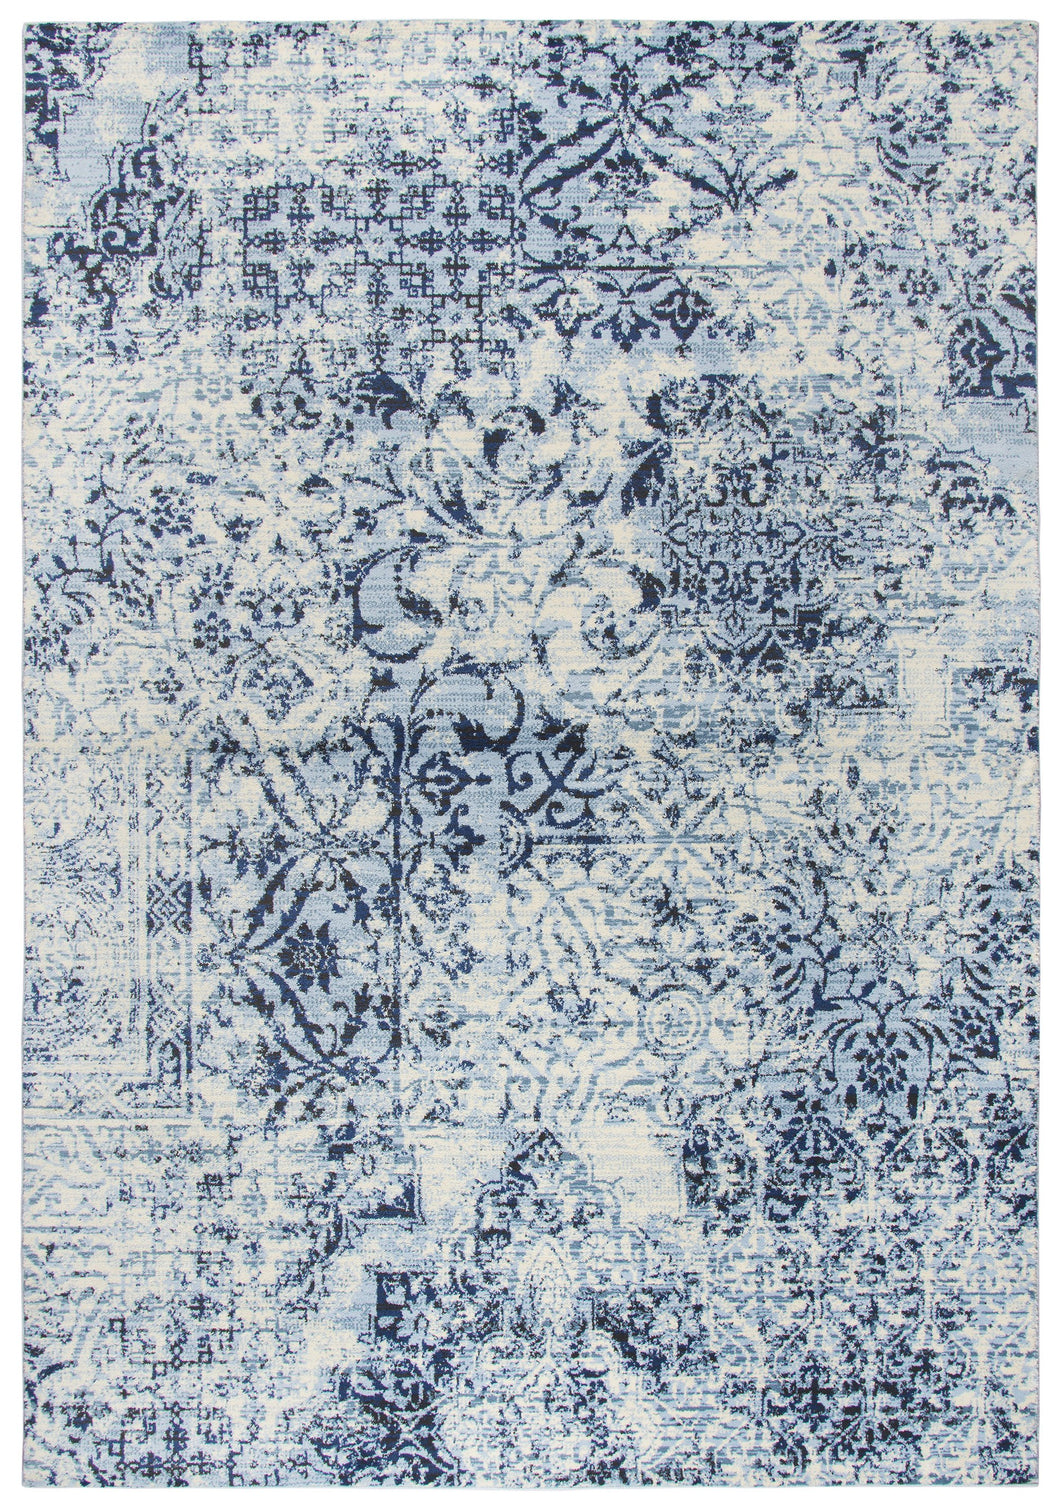 Rizzy Home Panache PN6959 Ivory Patch Work Floral Area Rug